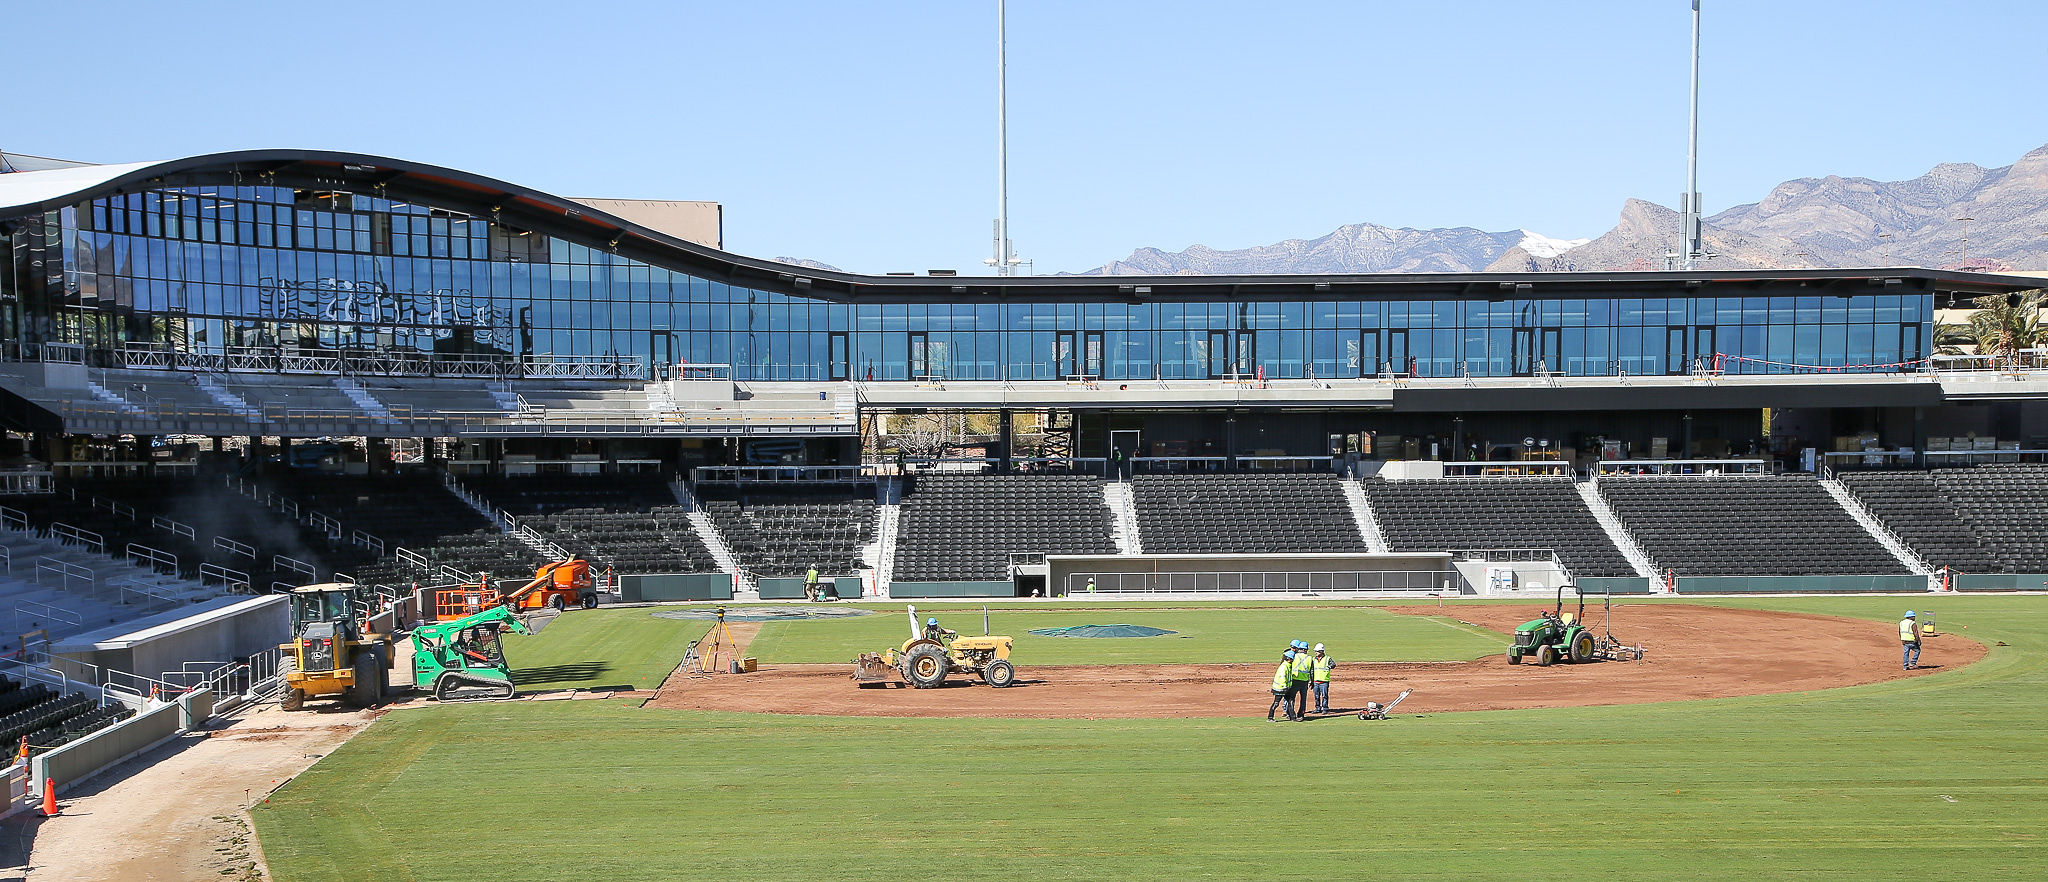 Aviators' New Ballpark Will Take Game Entertainment to New Level Thanks to Giant Scoreboard, More Cameras